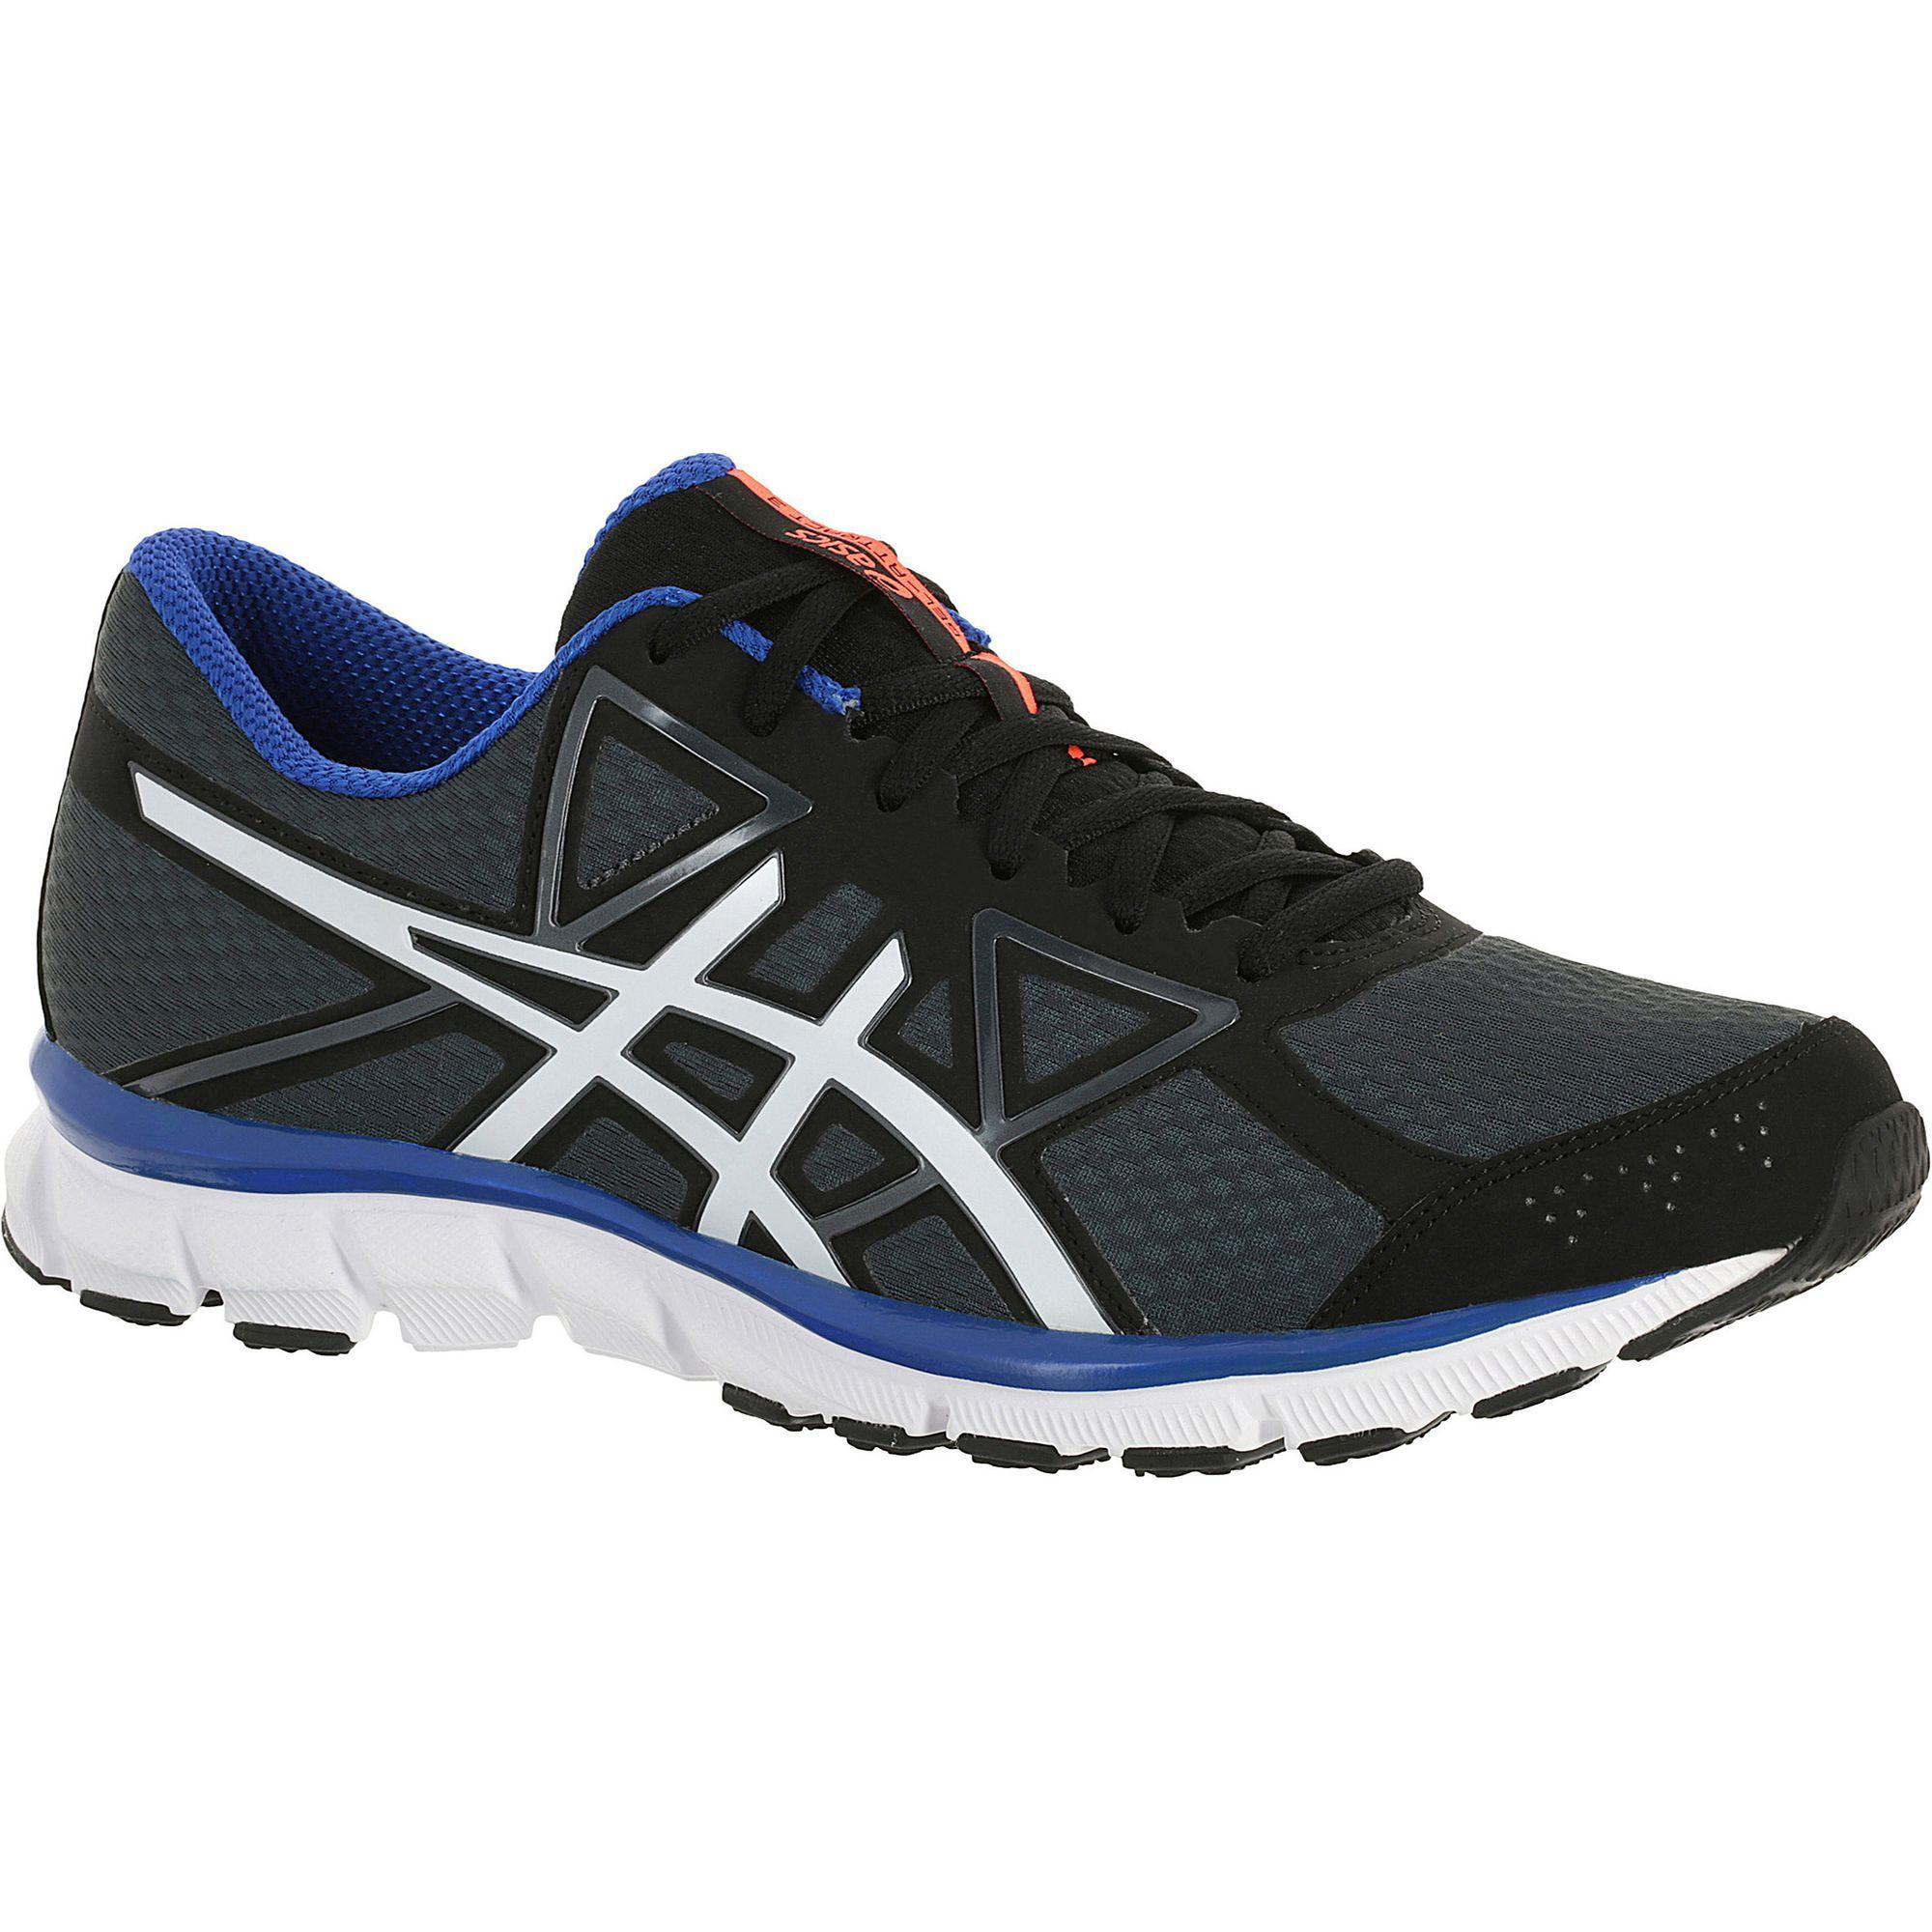 Gel Blc Running H Gris Pe15 Homme Asics Chaussures Attract Bl kuOXPZi